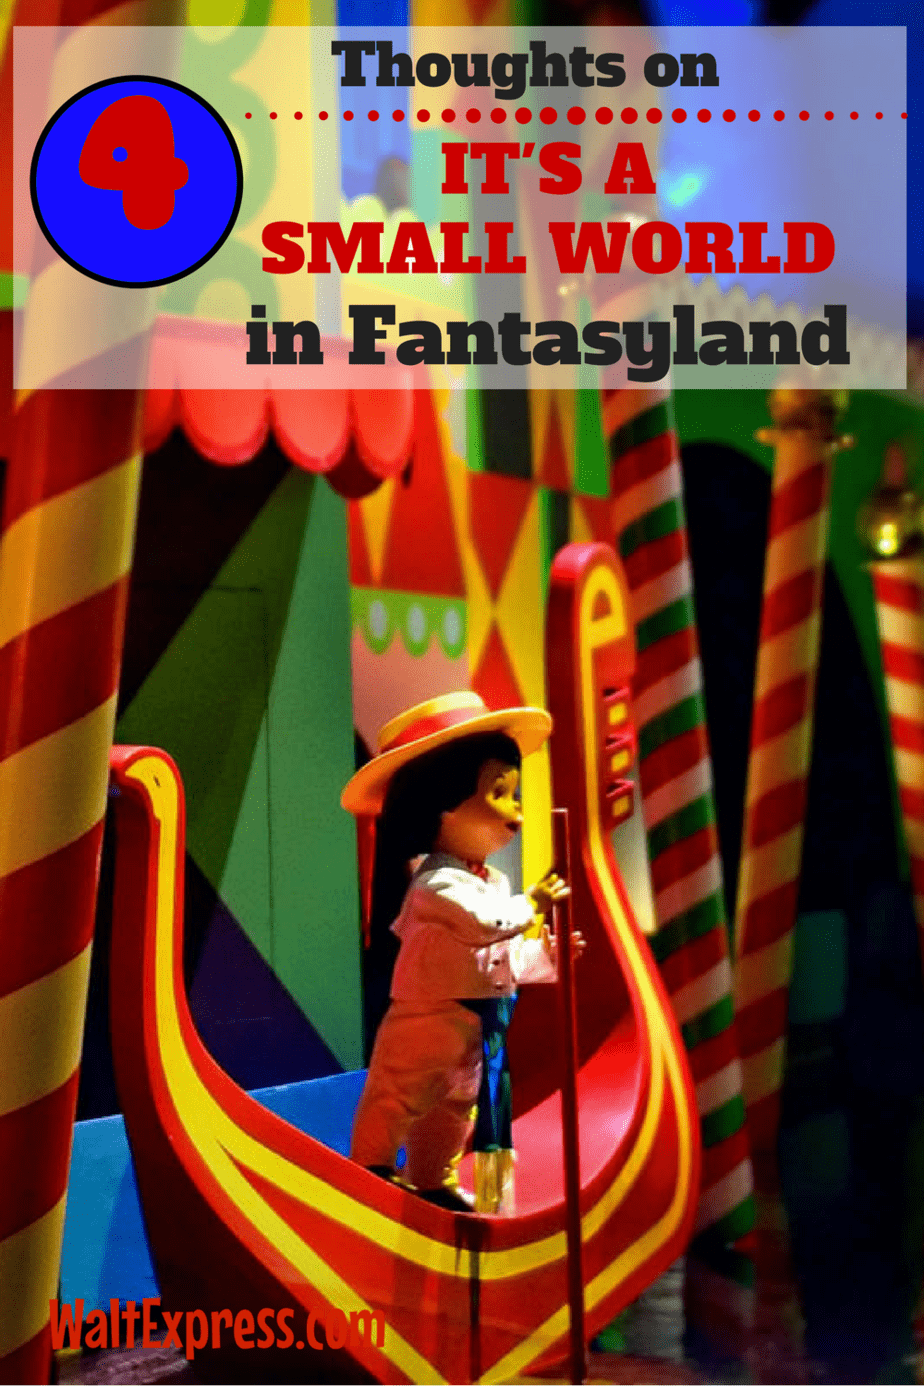 4 Thoughts On It's a Small World in Fantasyland